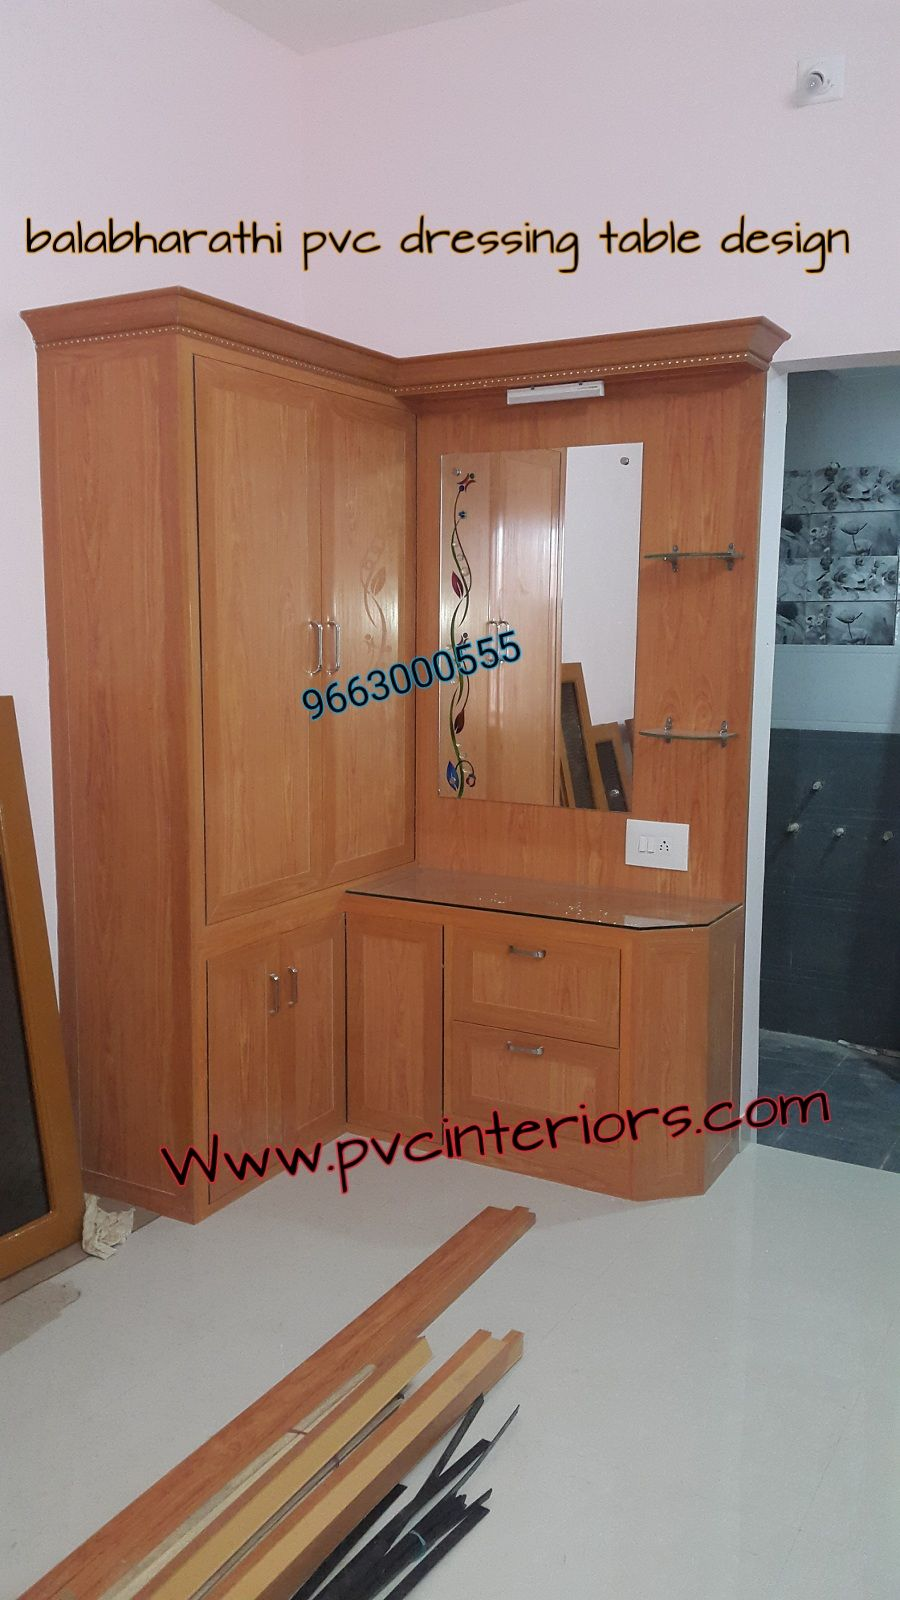 Dressing Table Pvc Balabharathi